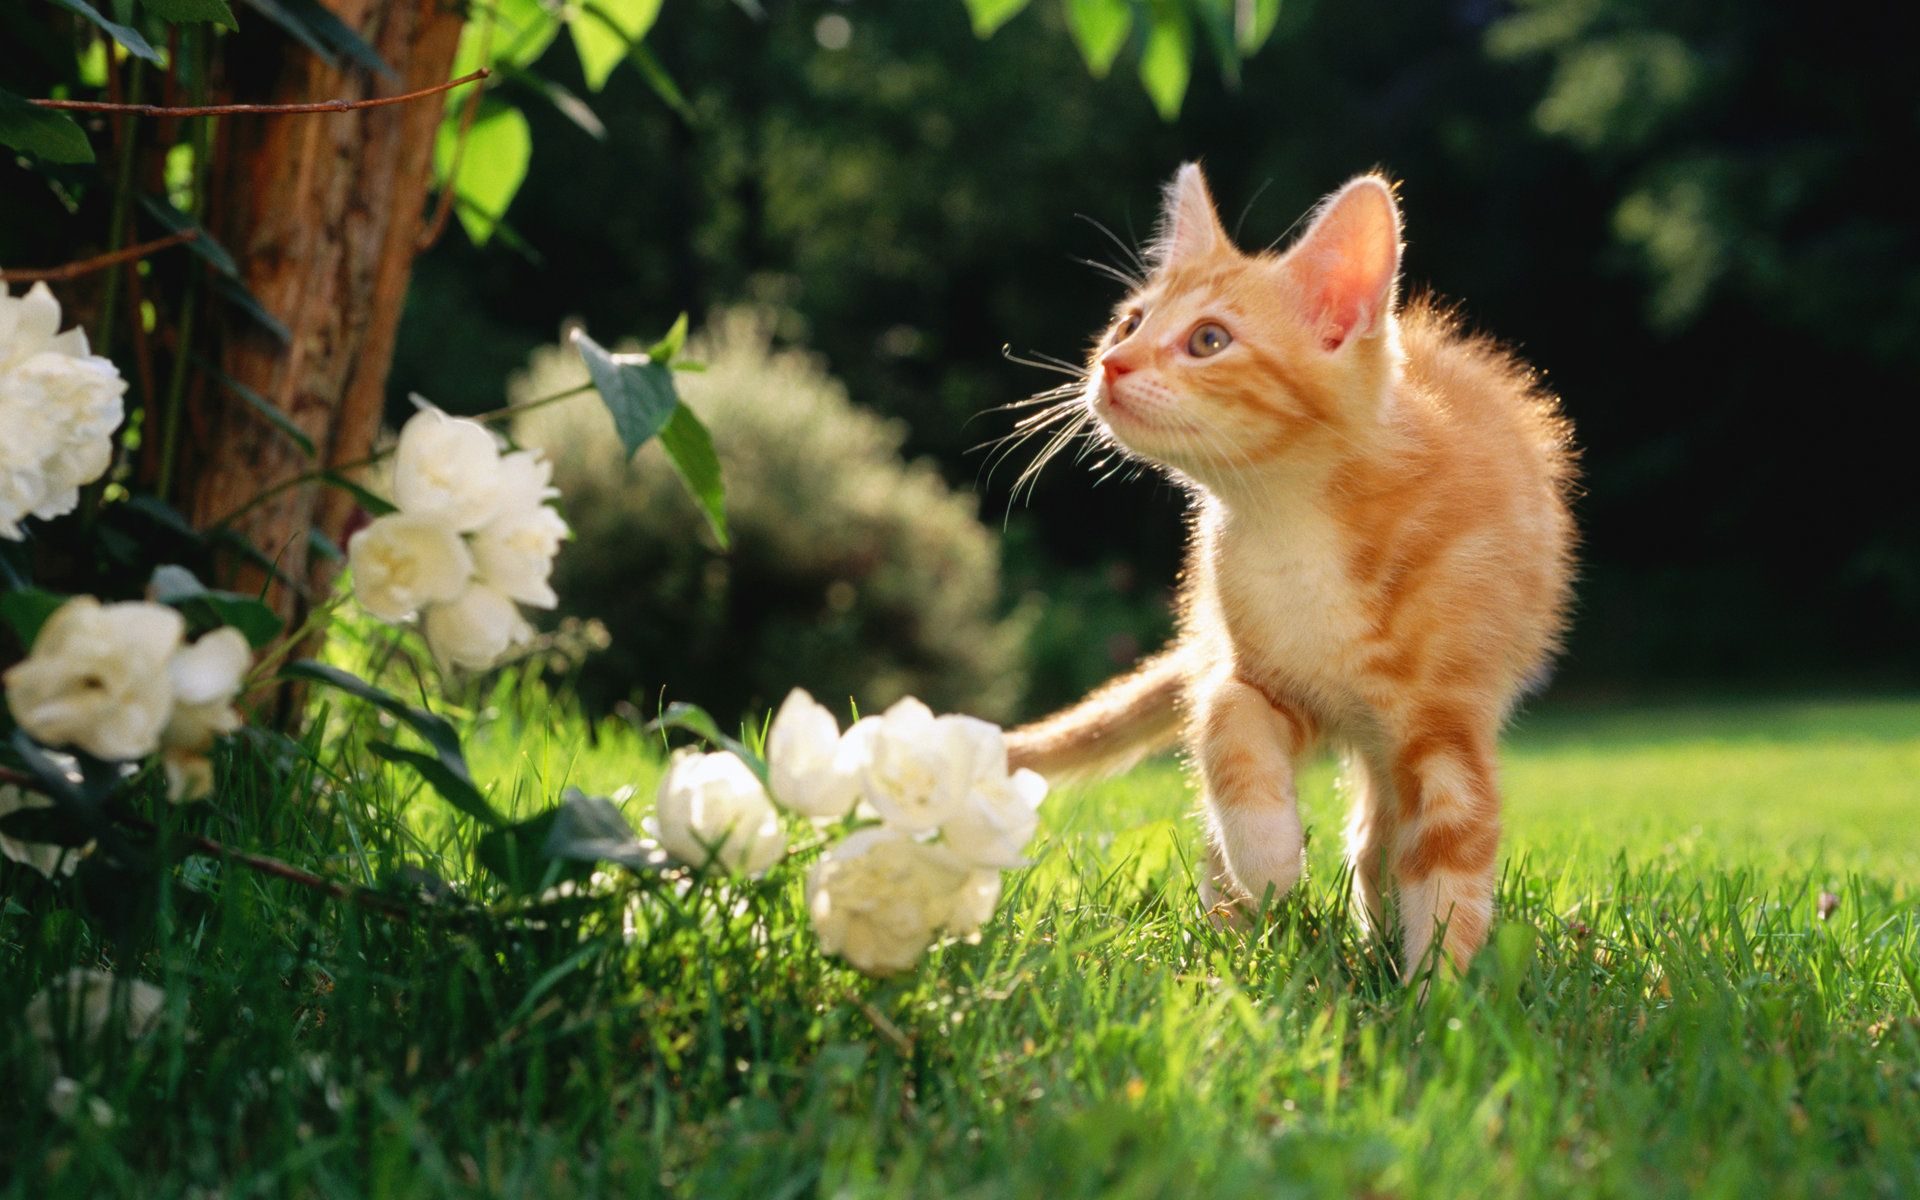 HD Sweet Kitty Adorable Fluffy Baby Kittens Widescreen